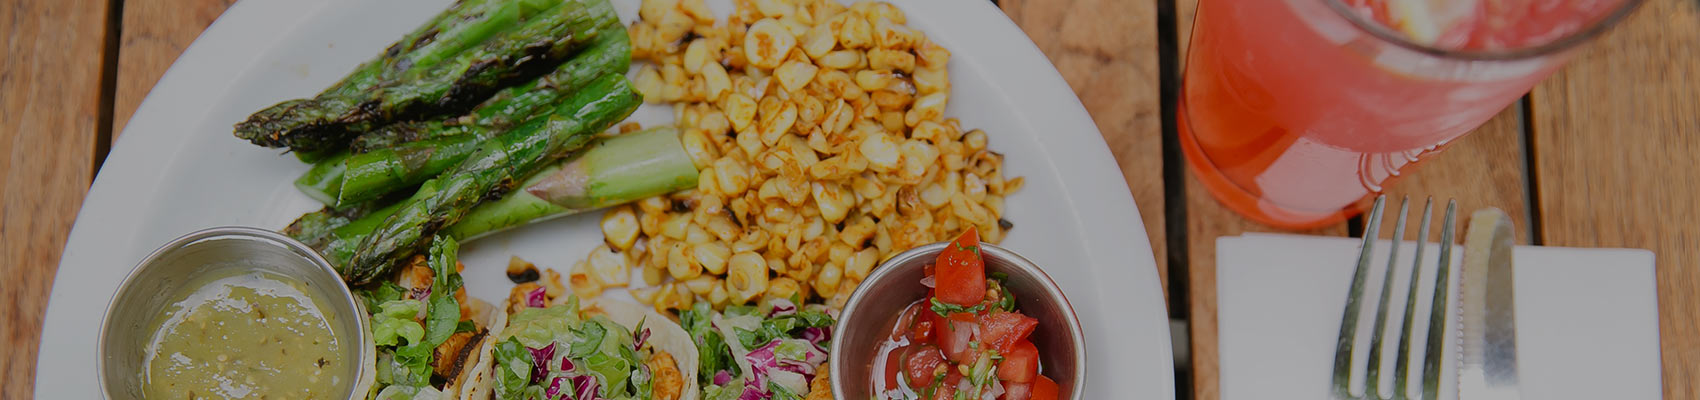 contact header image of taco plate